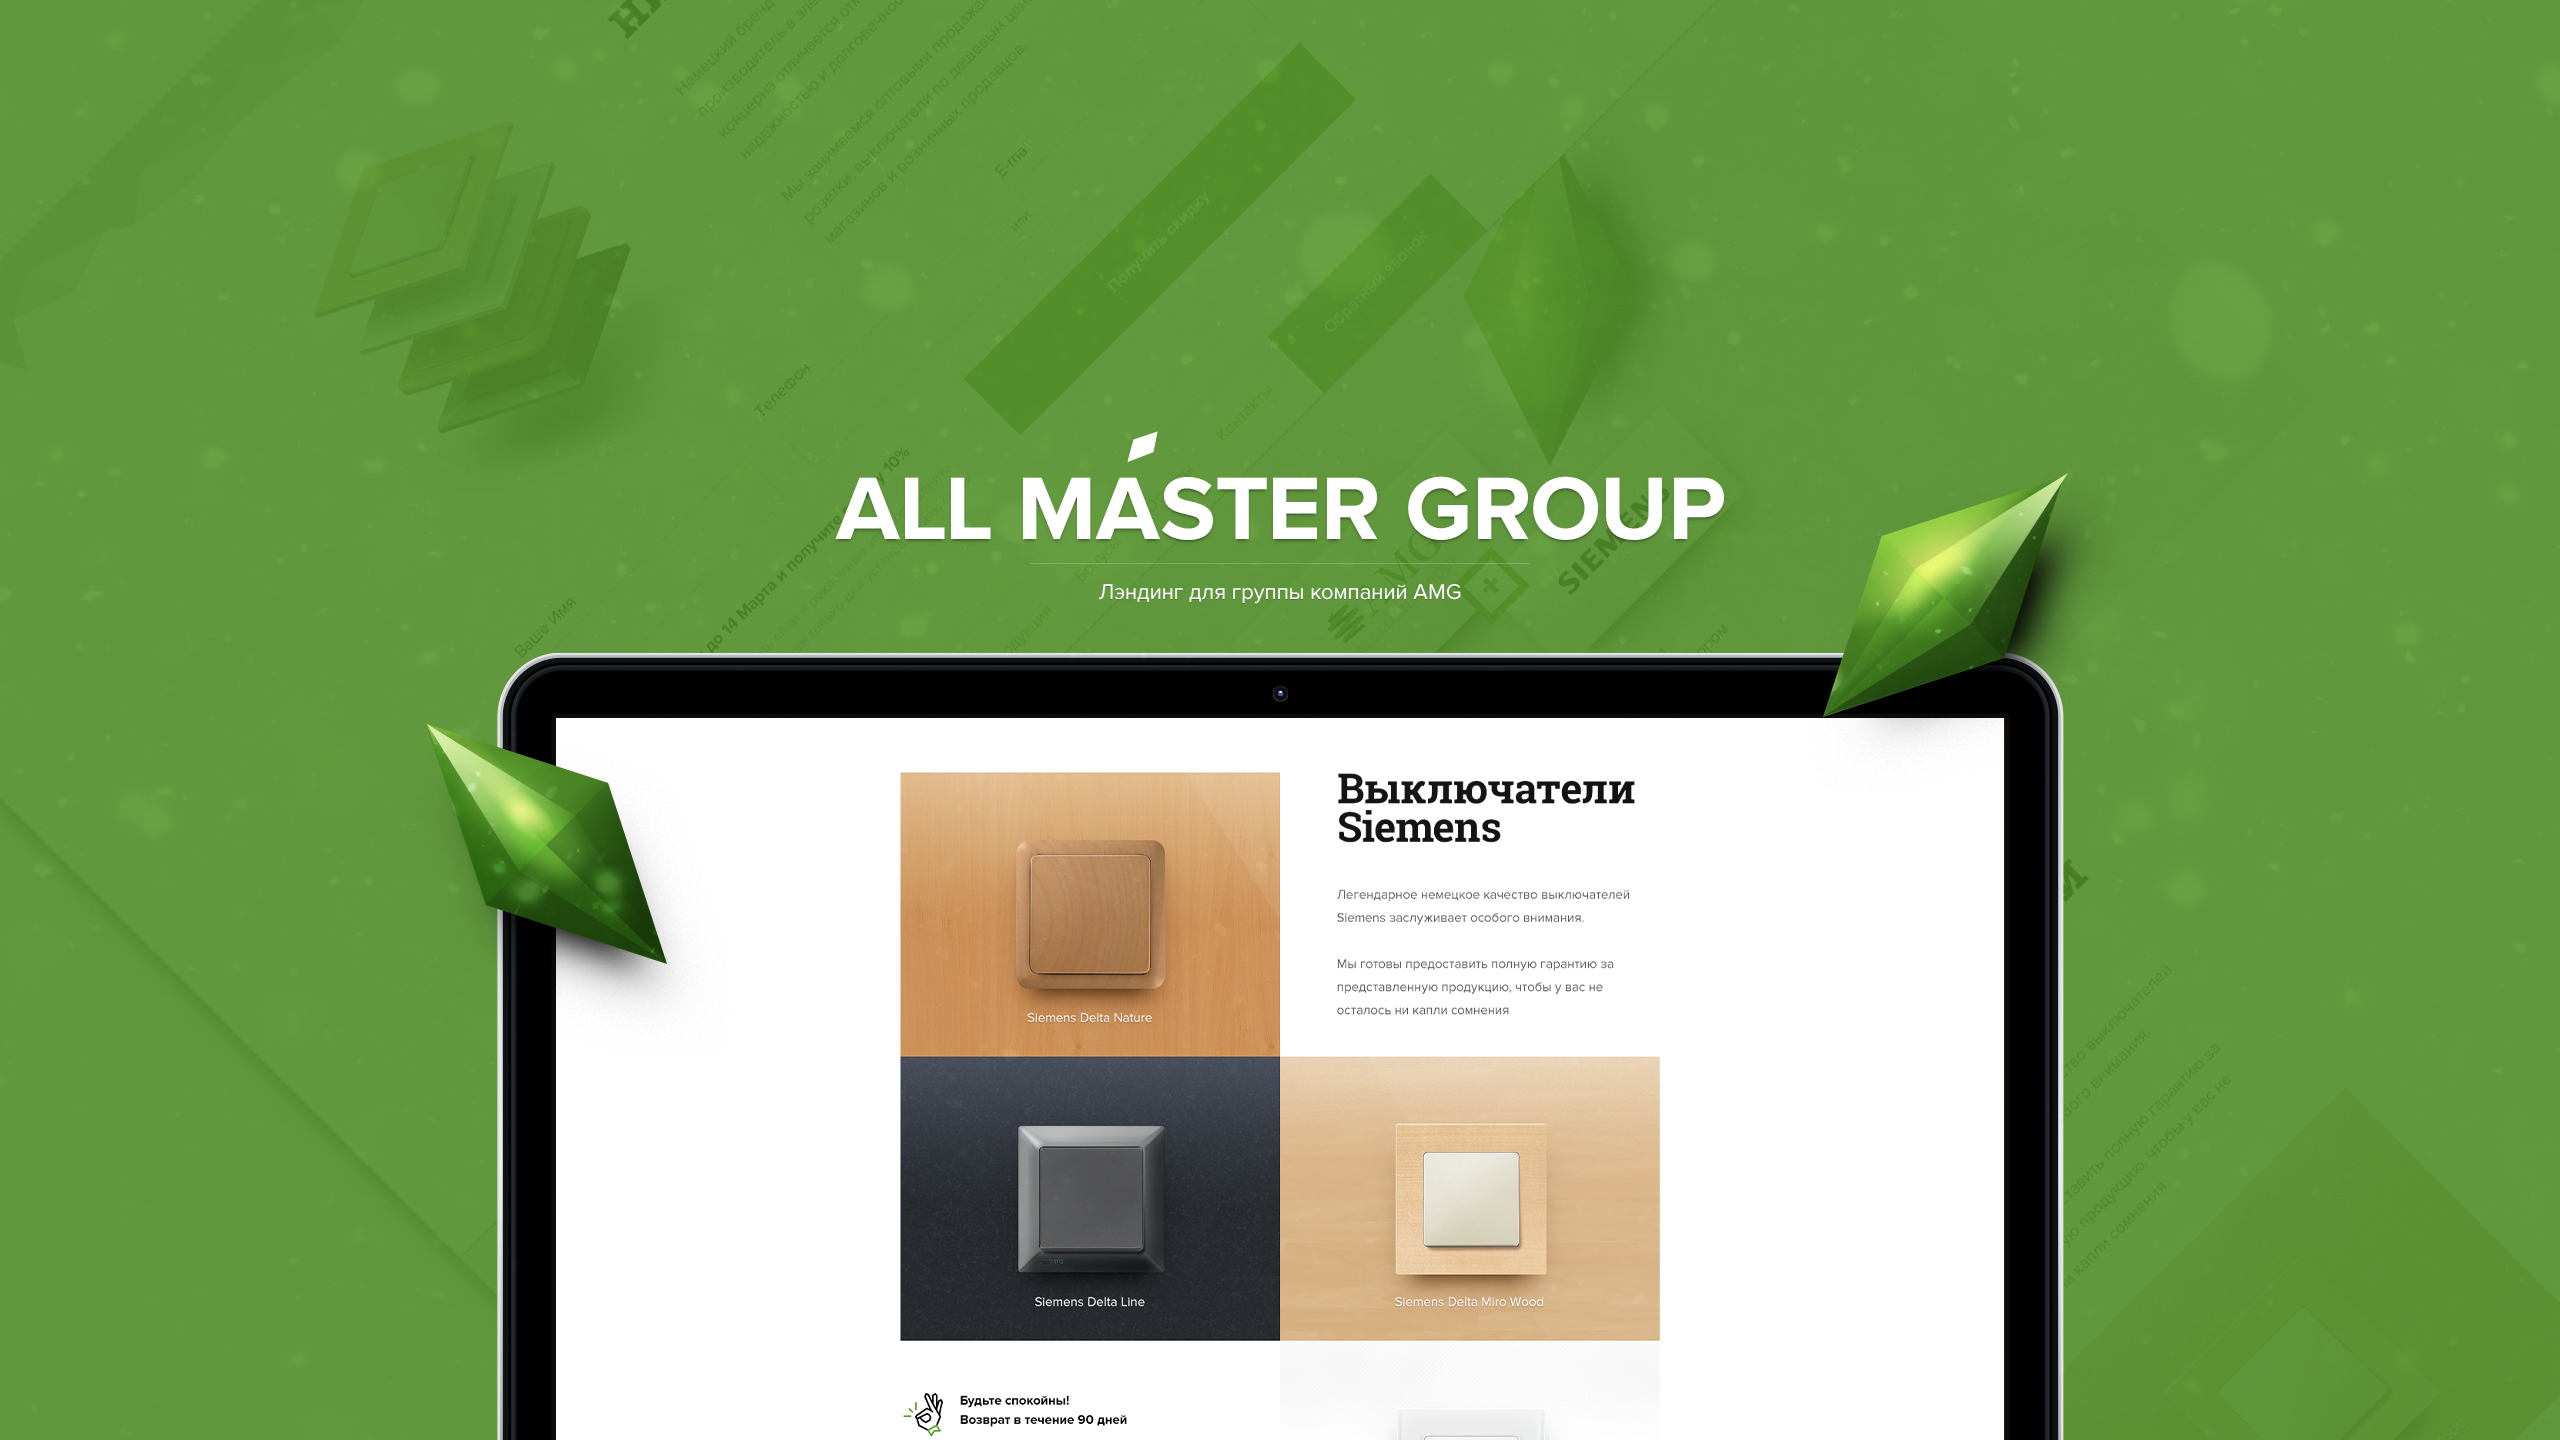 All Master Group by Ttwozero Words